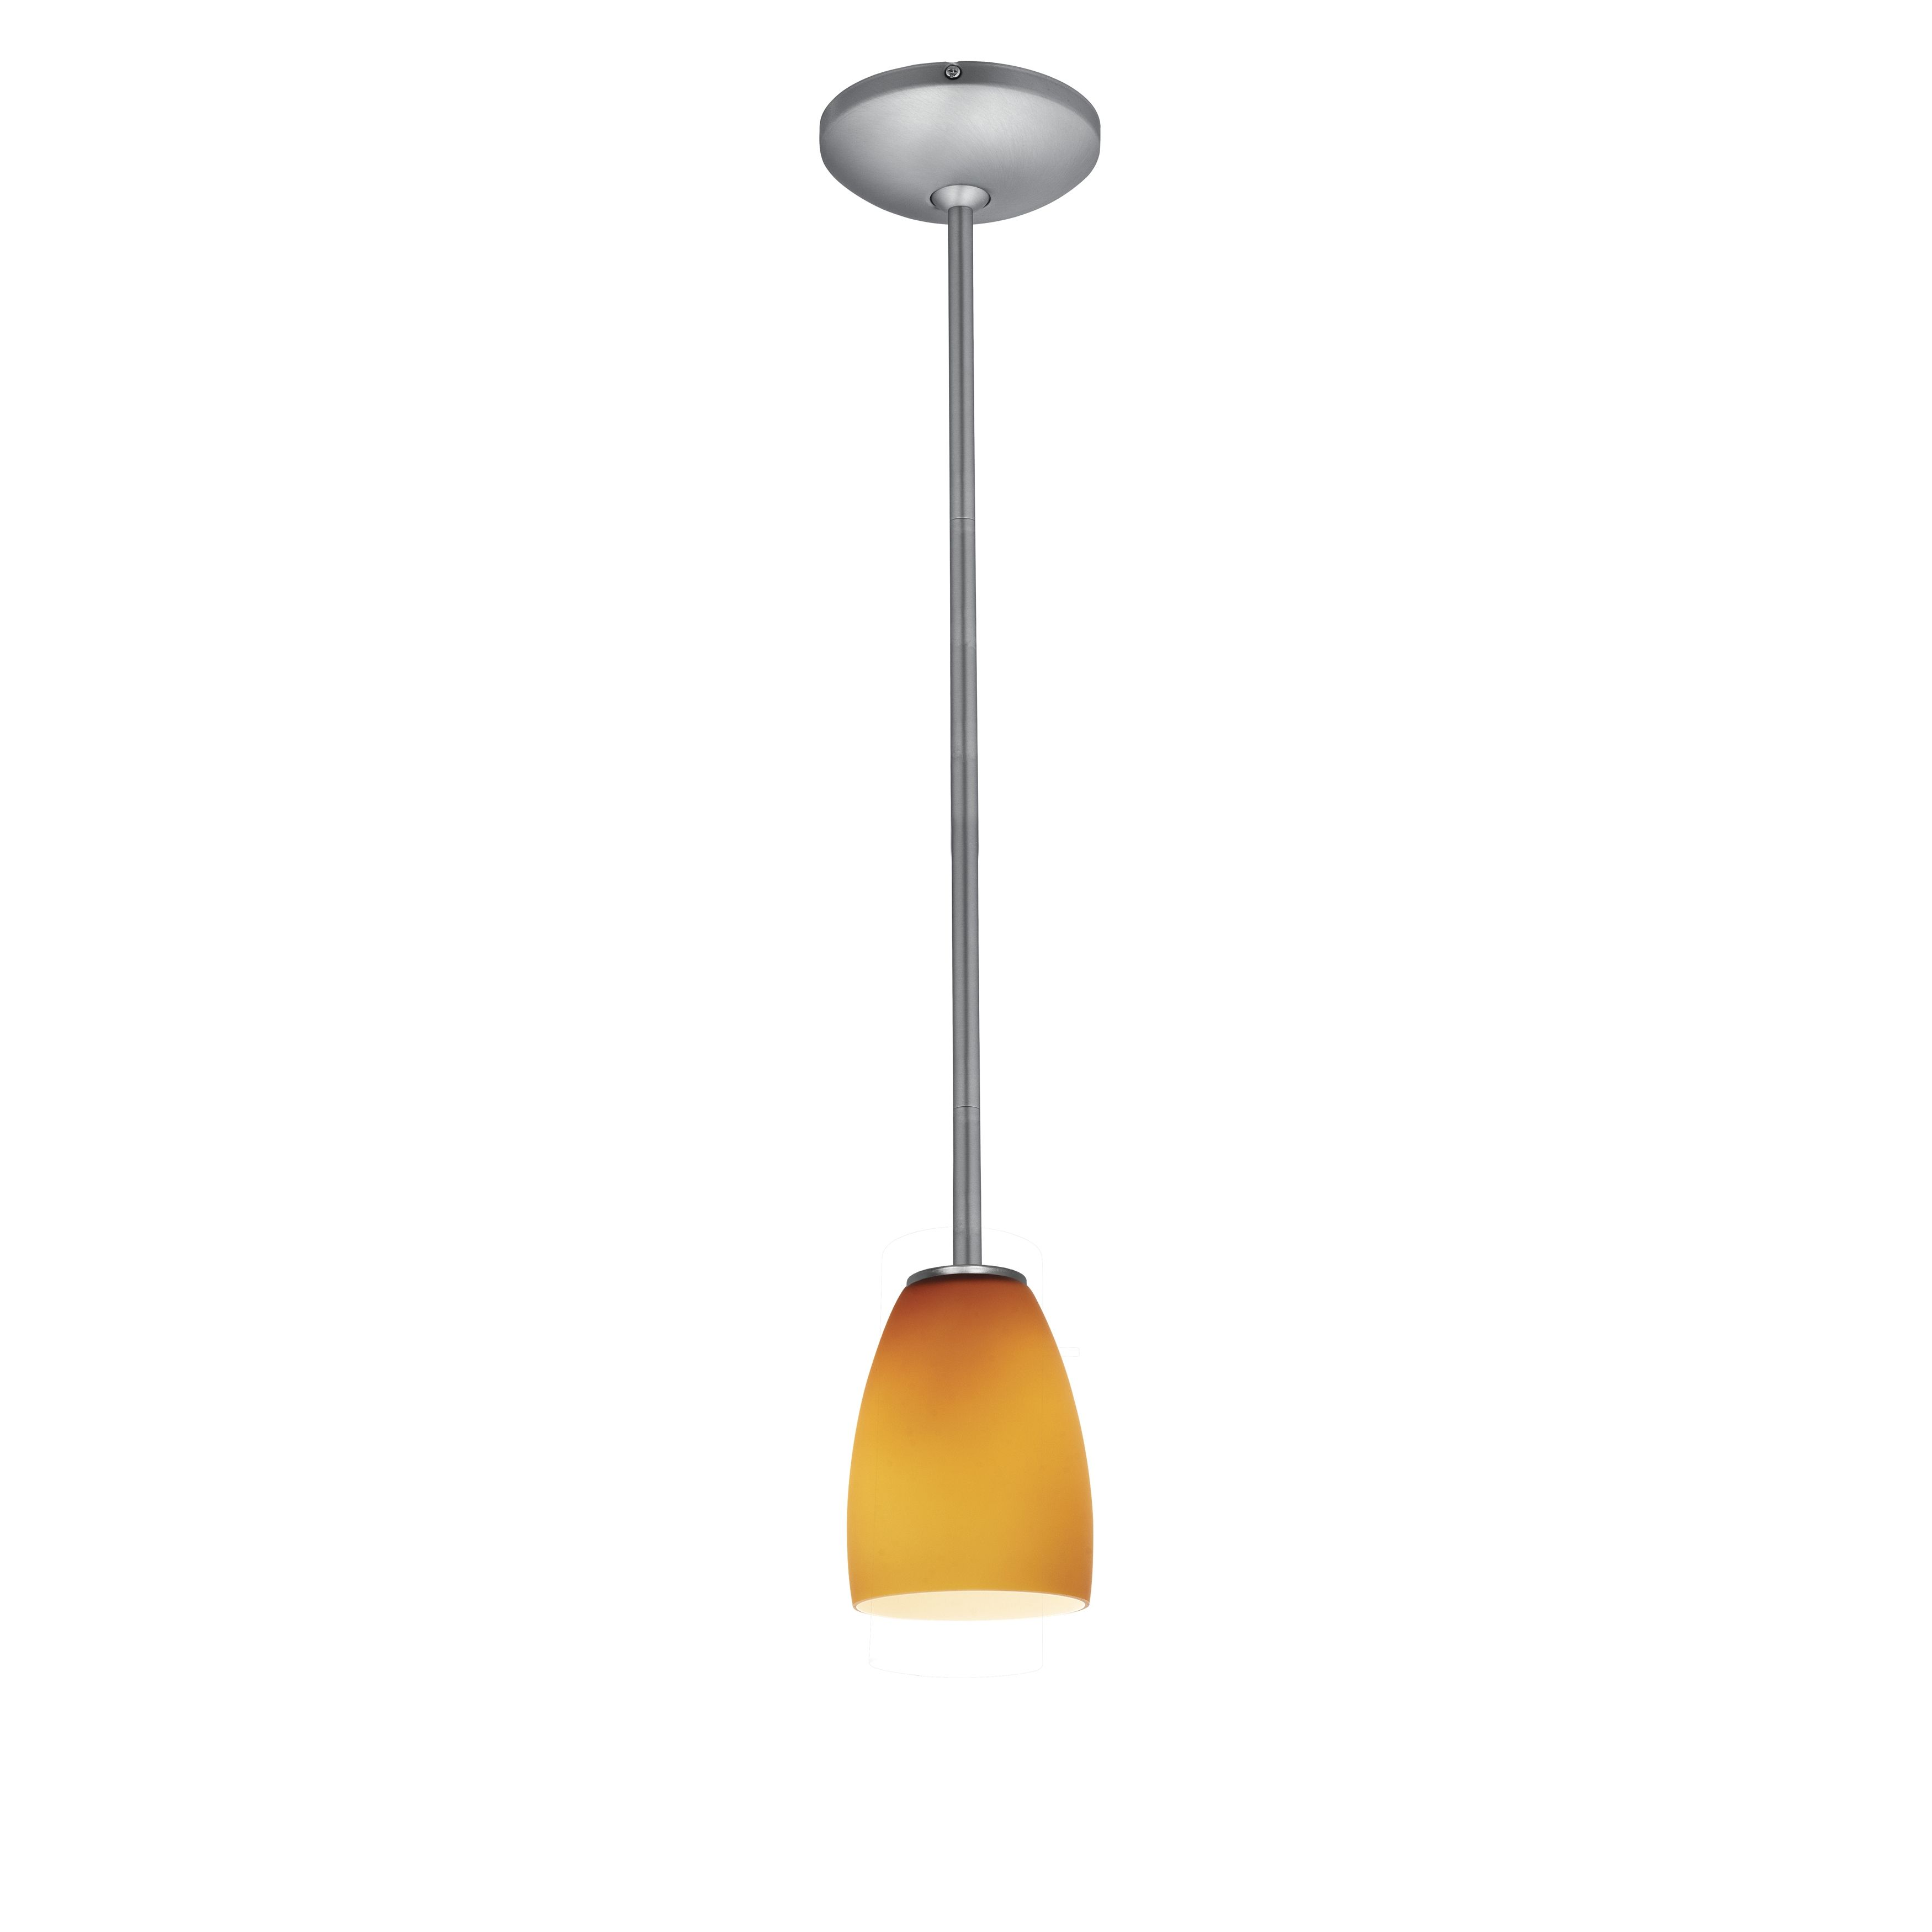 Access Julia 1 Light Brushed Steel Inari Energy Efficient Pendant